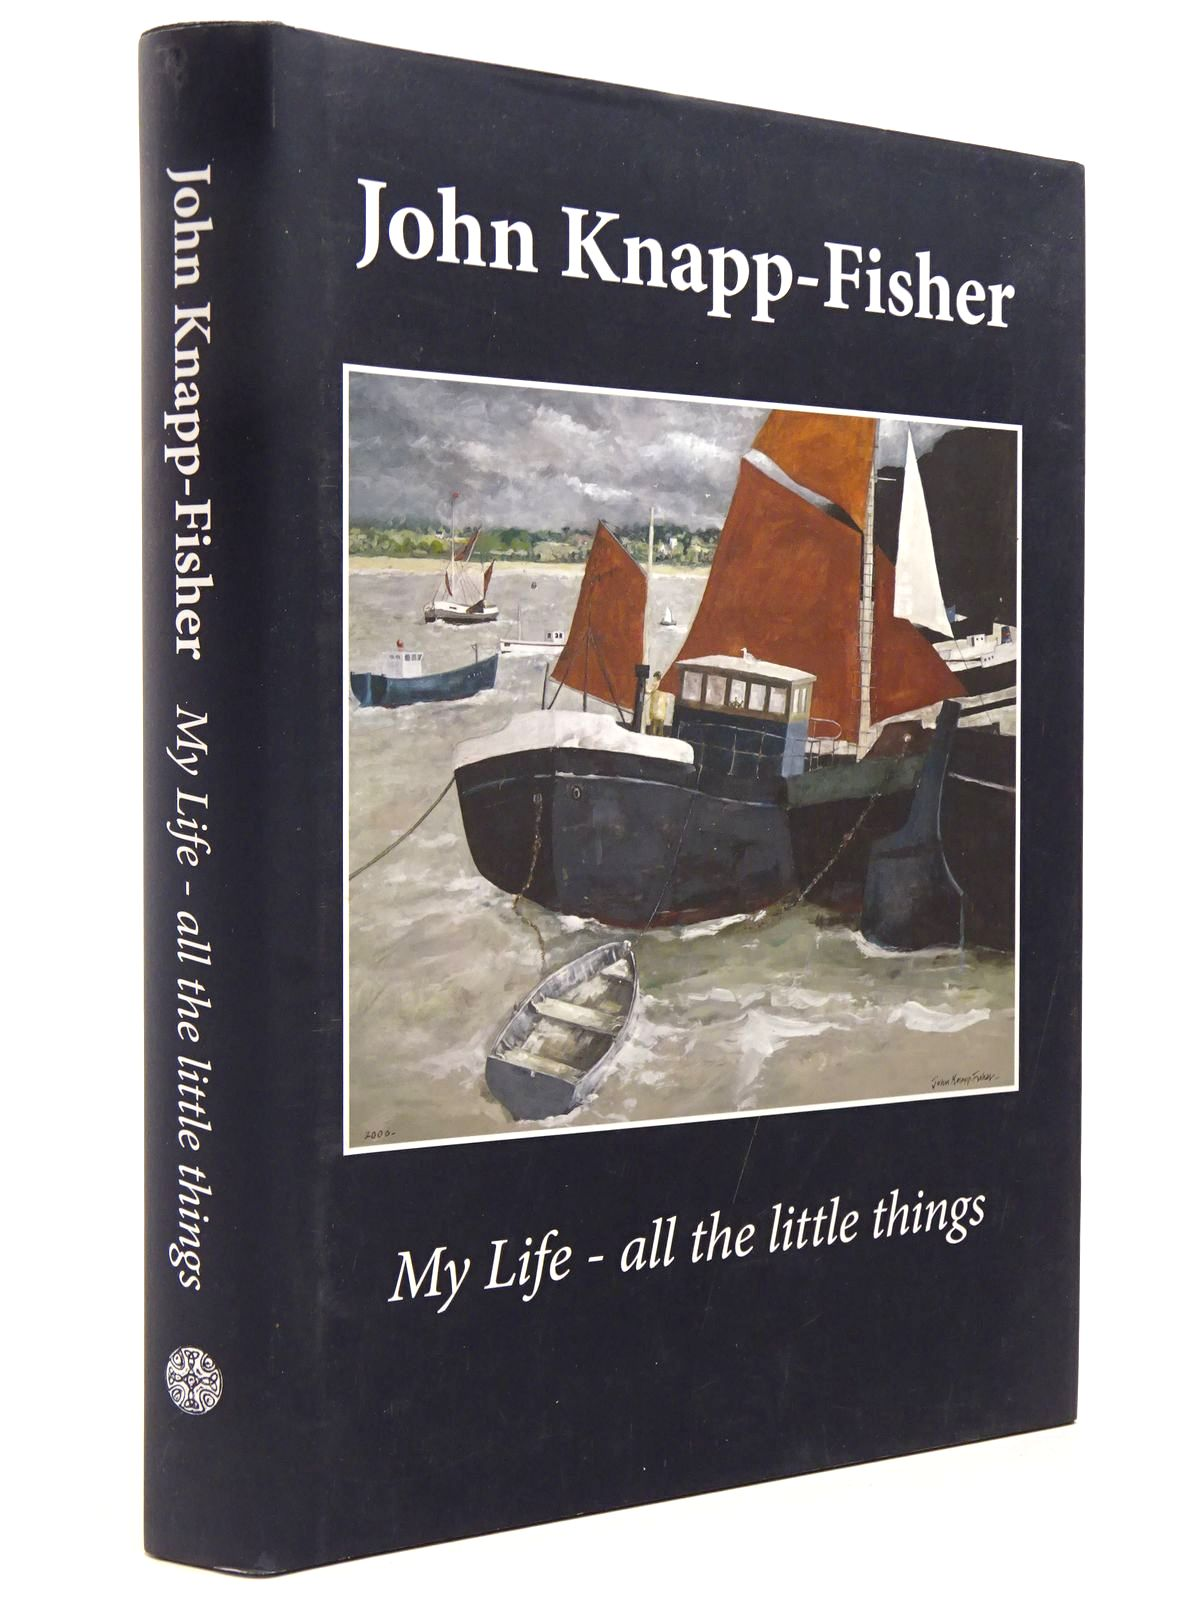 Photo of JOHN KNAPP-FISHER MY LIFE - ALL THE LITTLE THINGS written by Knapp-Fisher, John illustrated by Knapp-Fisher, John published by The Senecio Press (STOCK CODE: 2129591)  for sale by Stella & Rose's Books